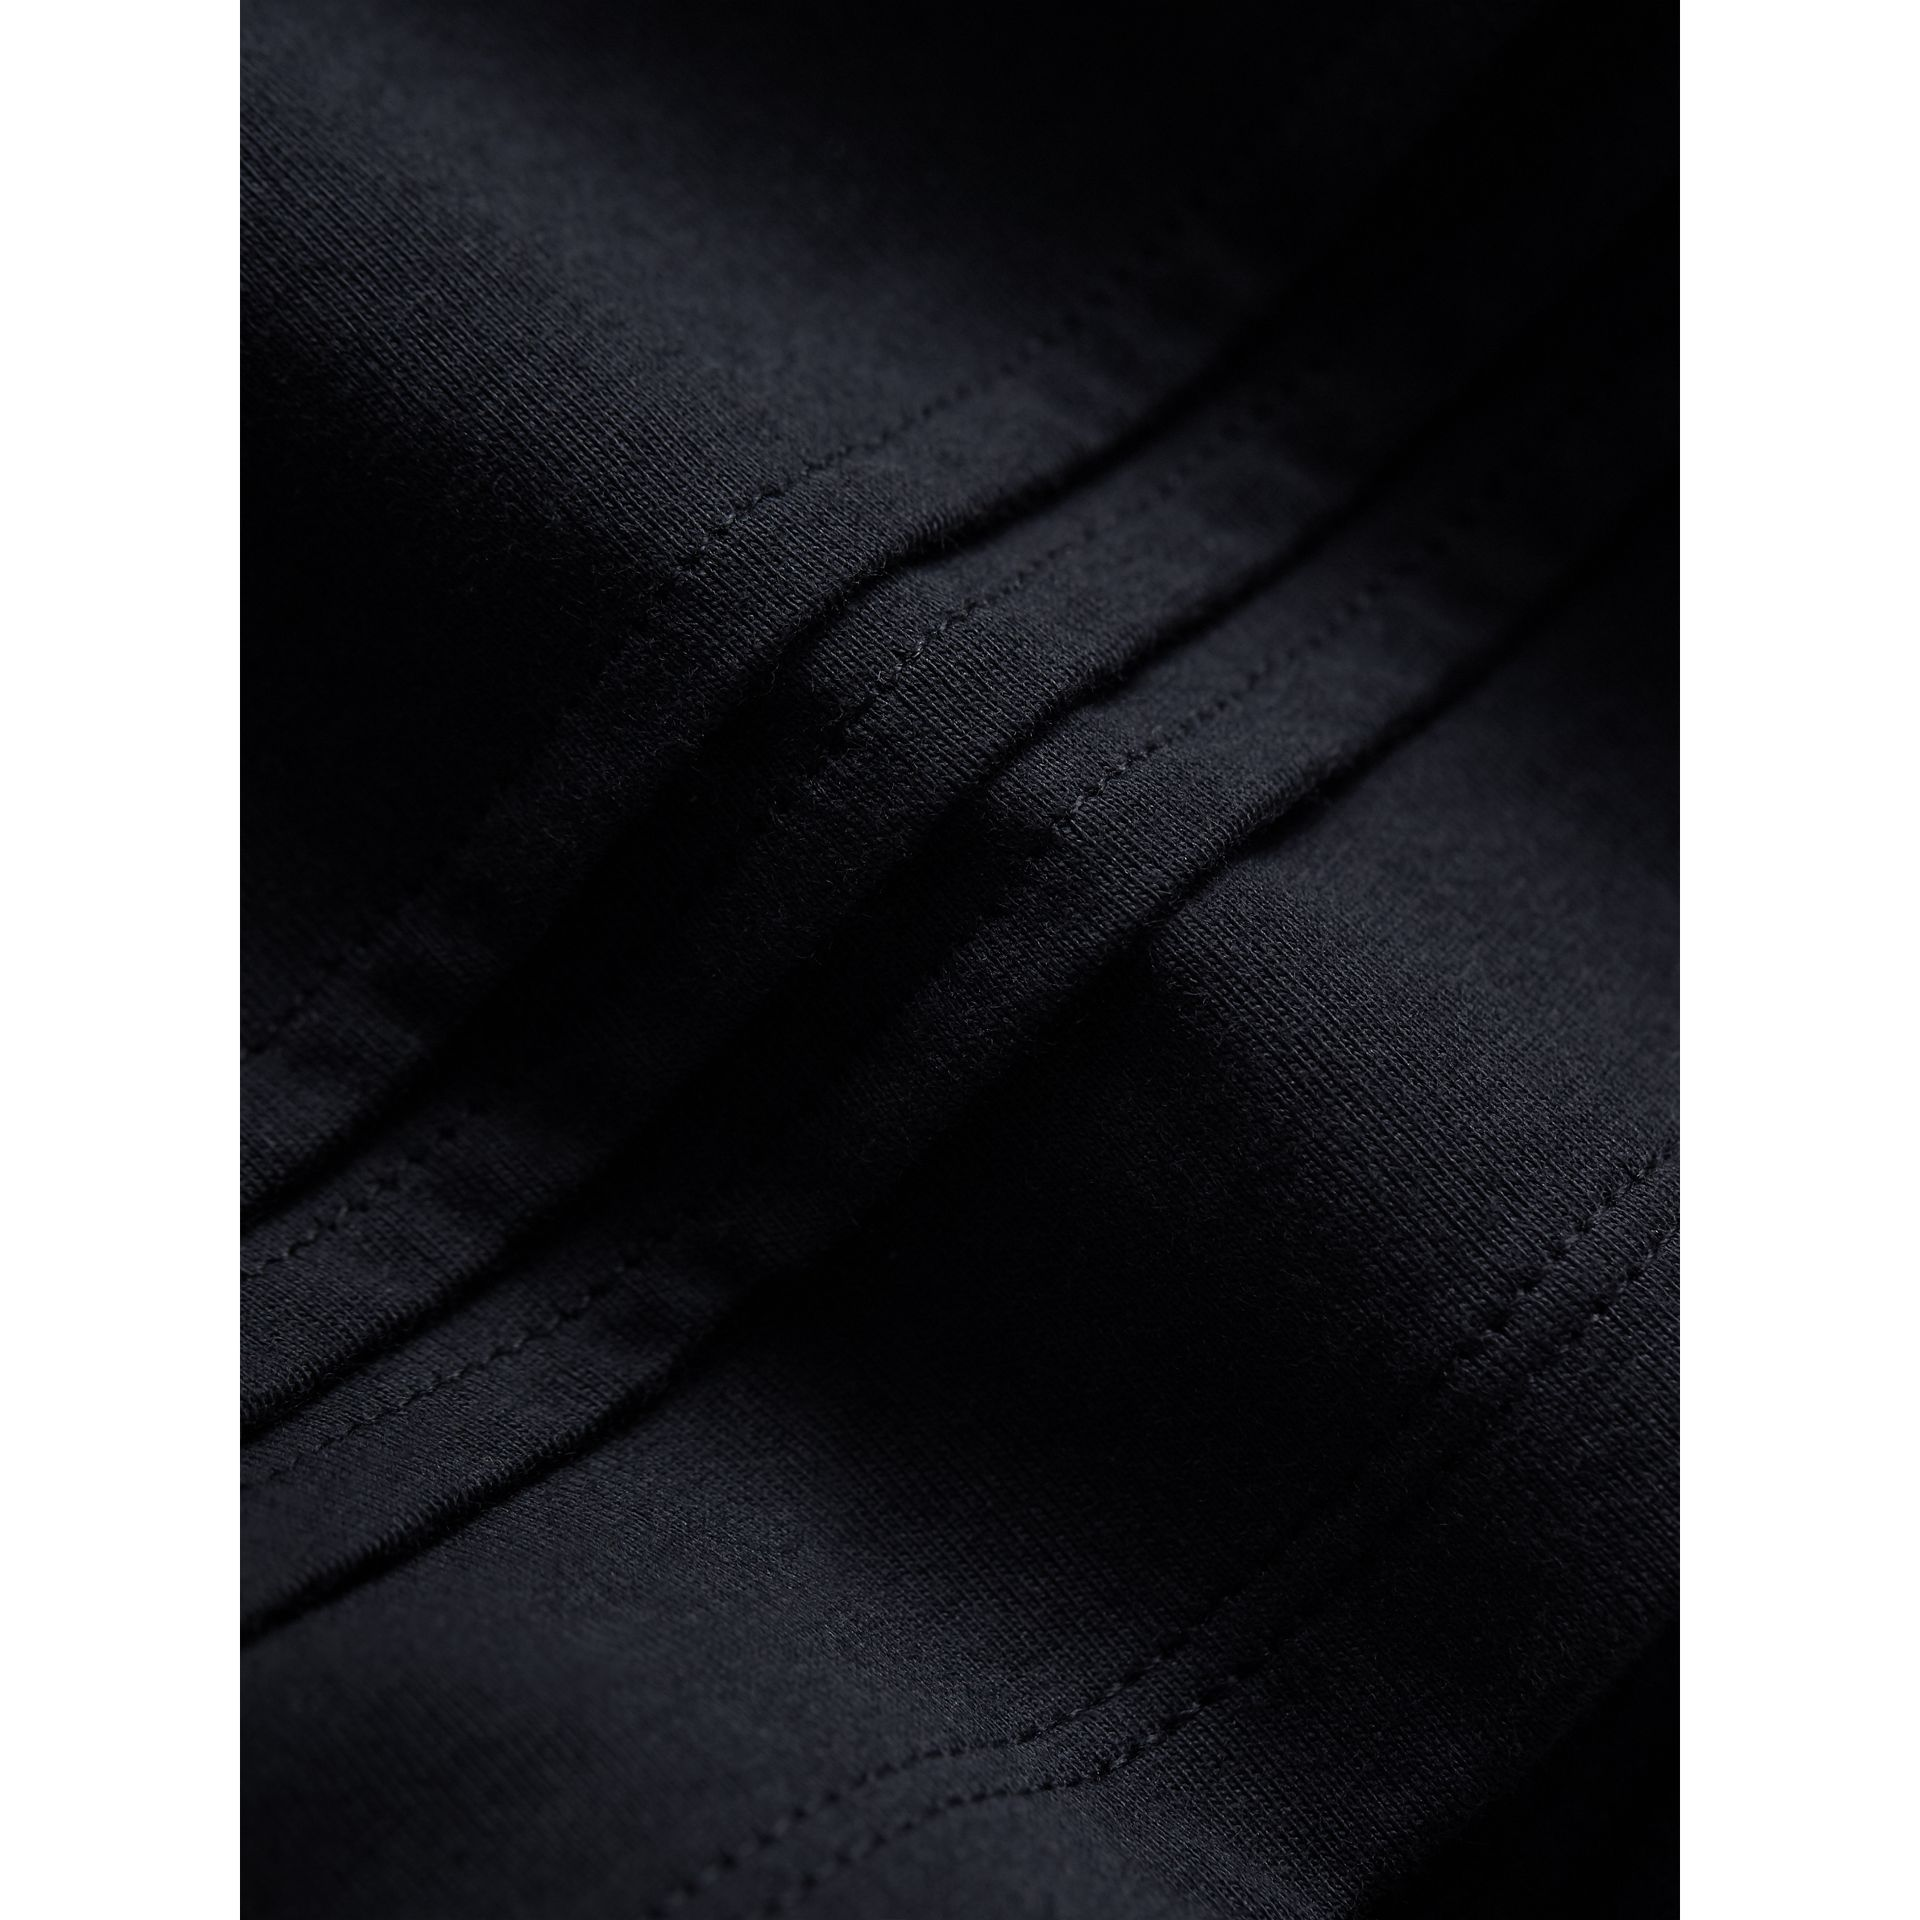 Pleat and Check Detail Cotton Top in Navy | Burberry United Kingdom - gallery image 1